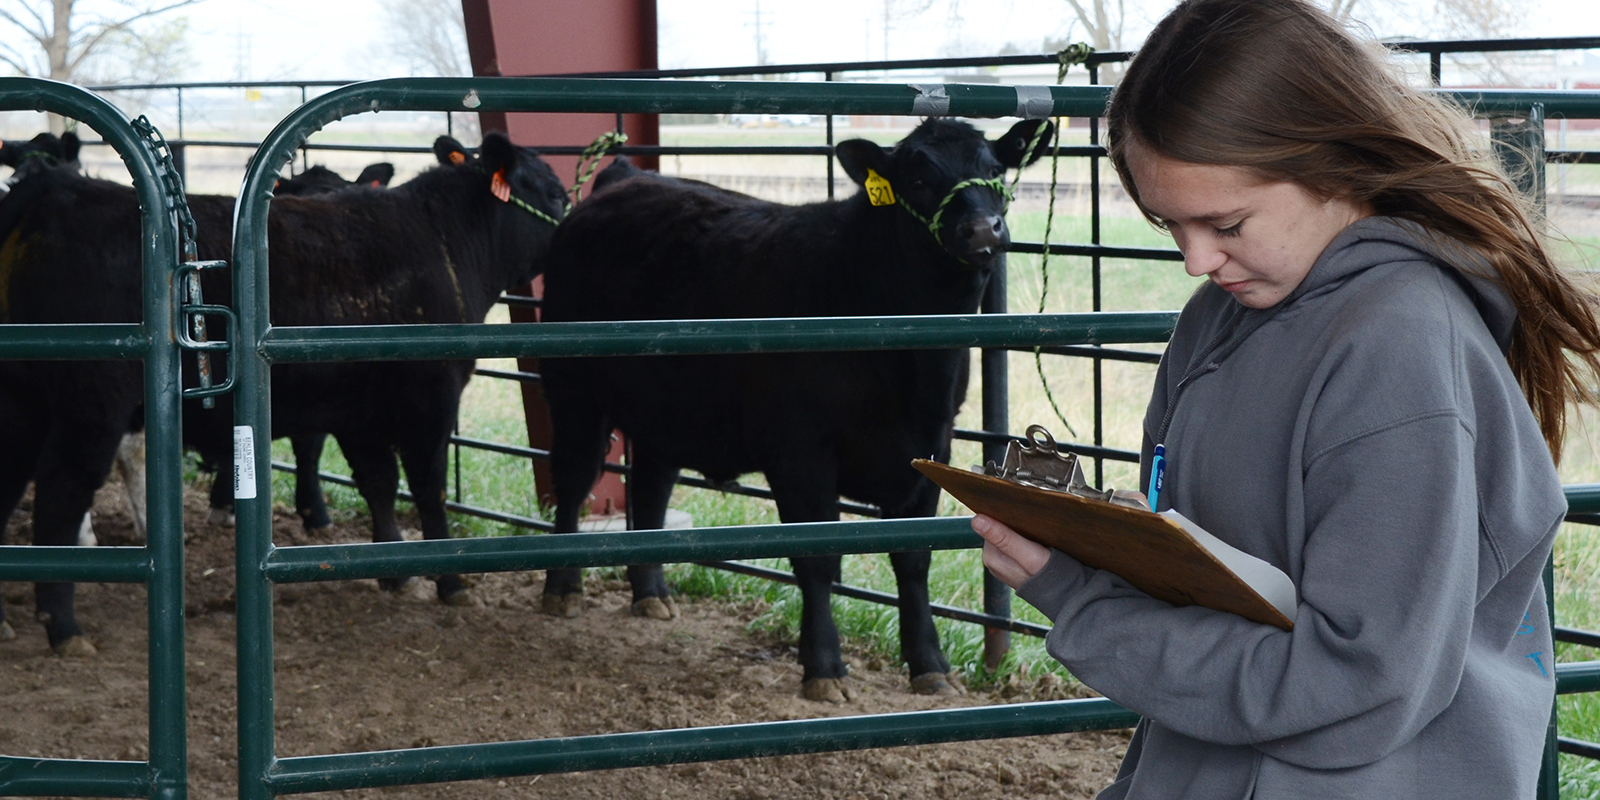 A girl looking at cows.